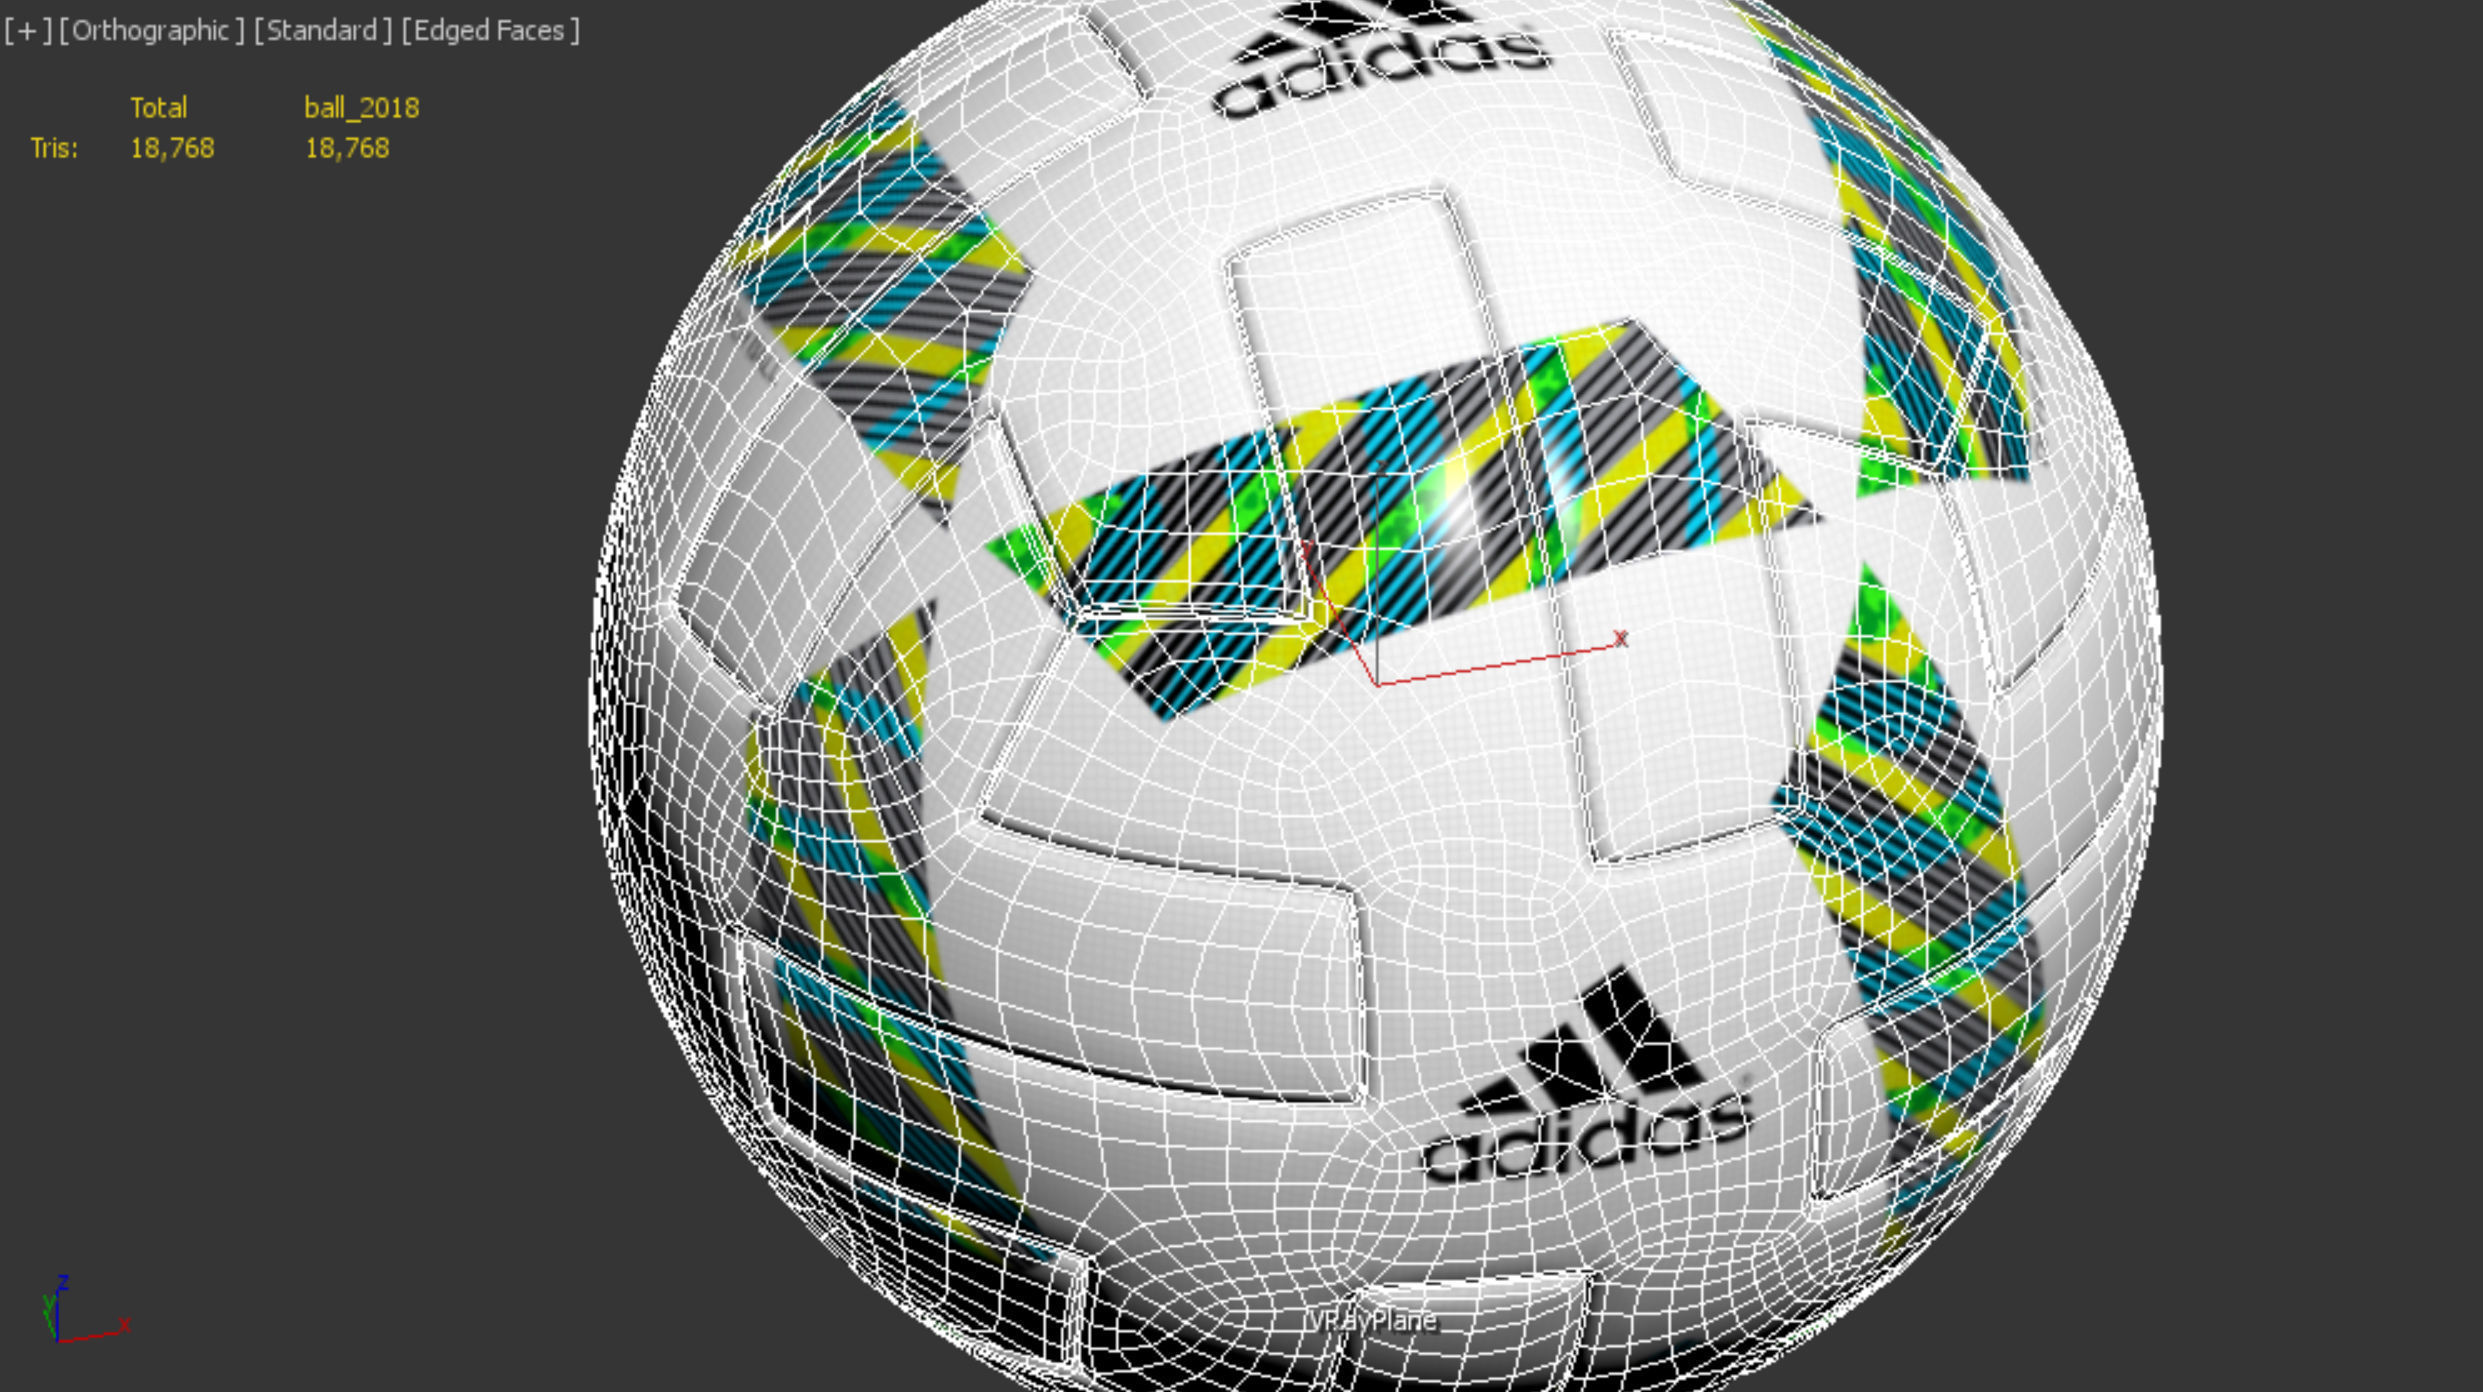 Top Football Ball World Cup 2018 - ball-fifa-blues-stars-youth-cup-2017-3d-model-low-poly-max-obj-fbx  Pictures_362628 .jpg